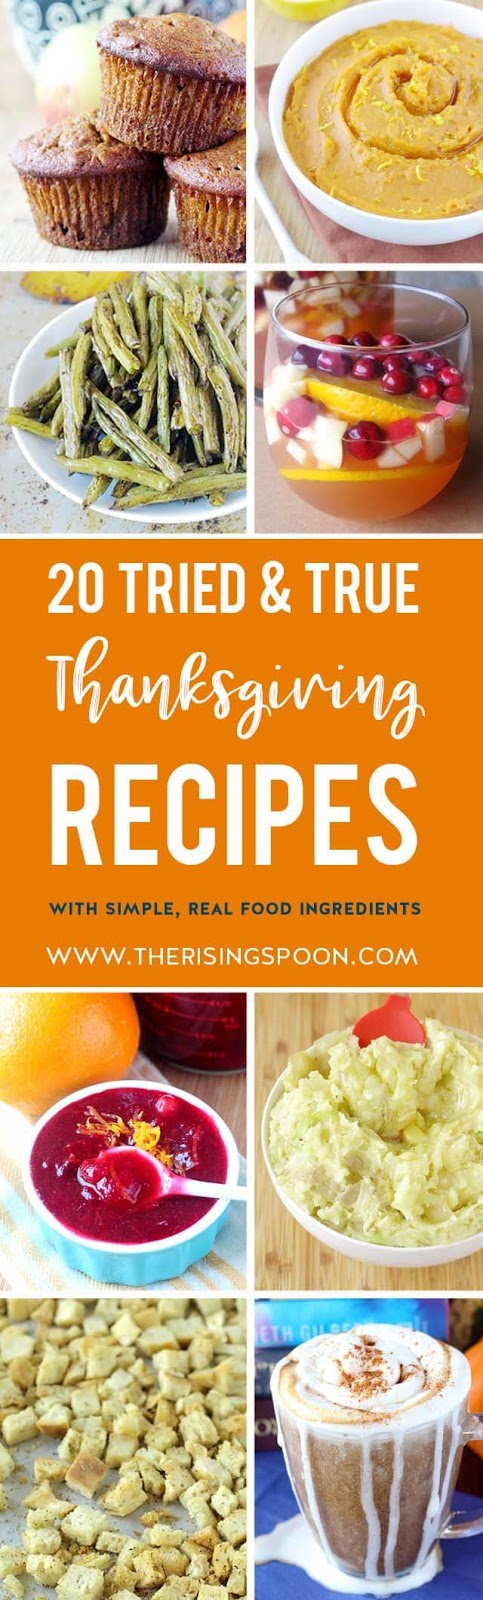 Want to serve the best recipes at your Thanksgiving meal? These are some of my tried-and-true dishes that I've been fixing for the past few years. My family loves them and I hope yours will, too!